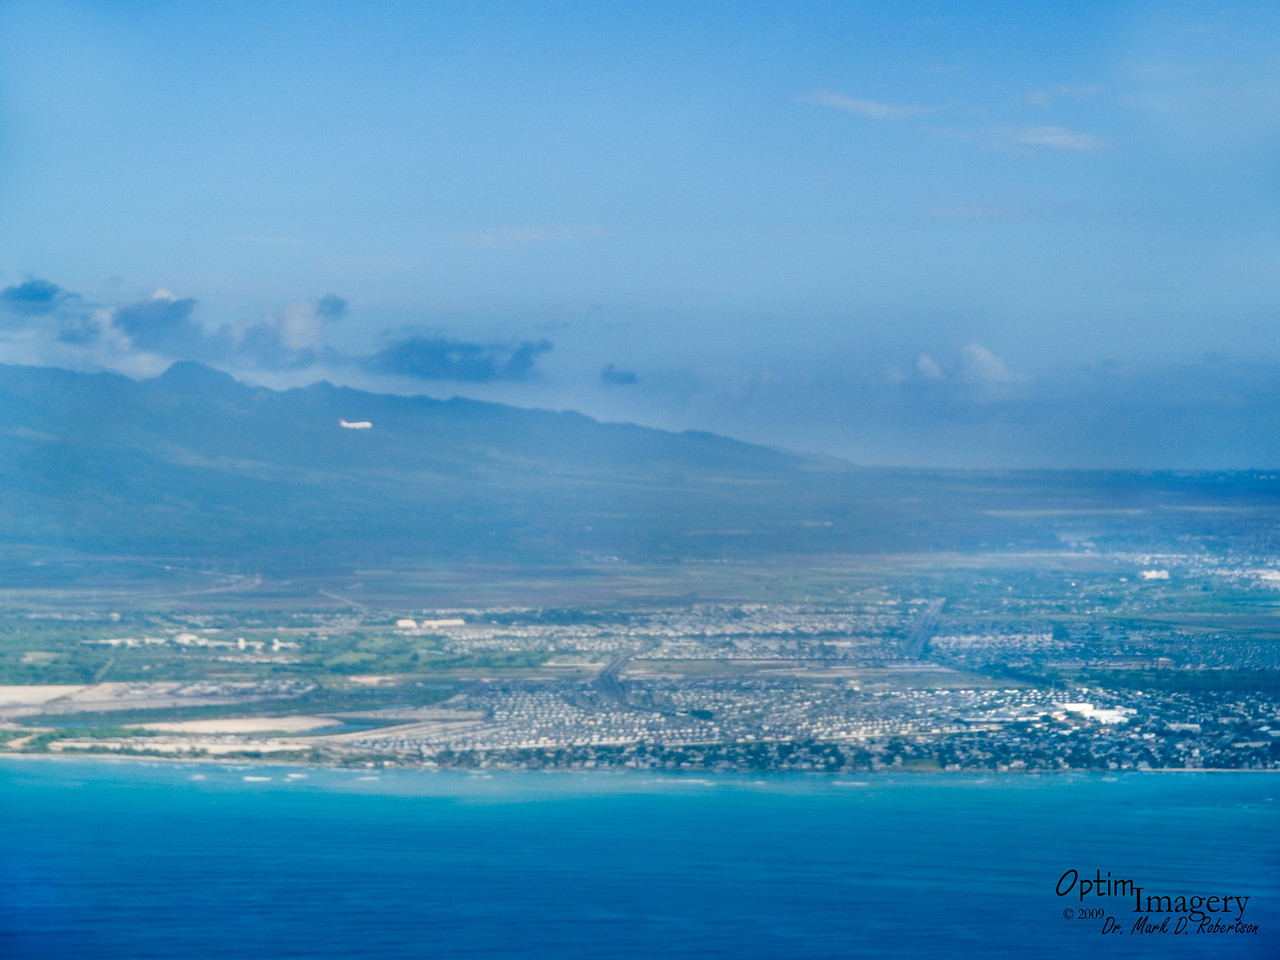 Sharing airspace with a NW flight on approach to Honolulu International Airport.